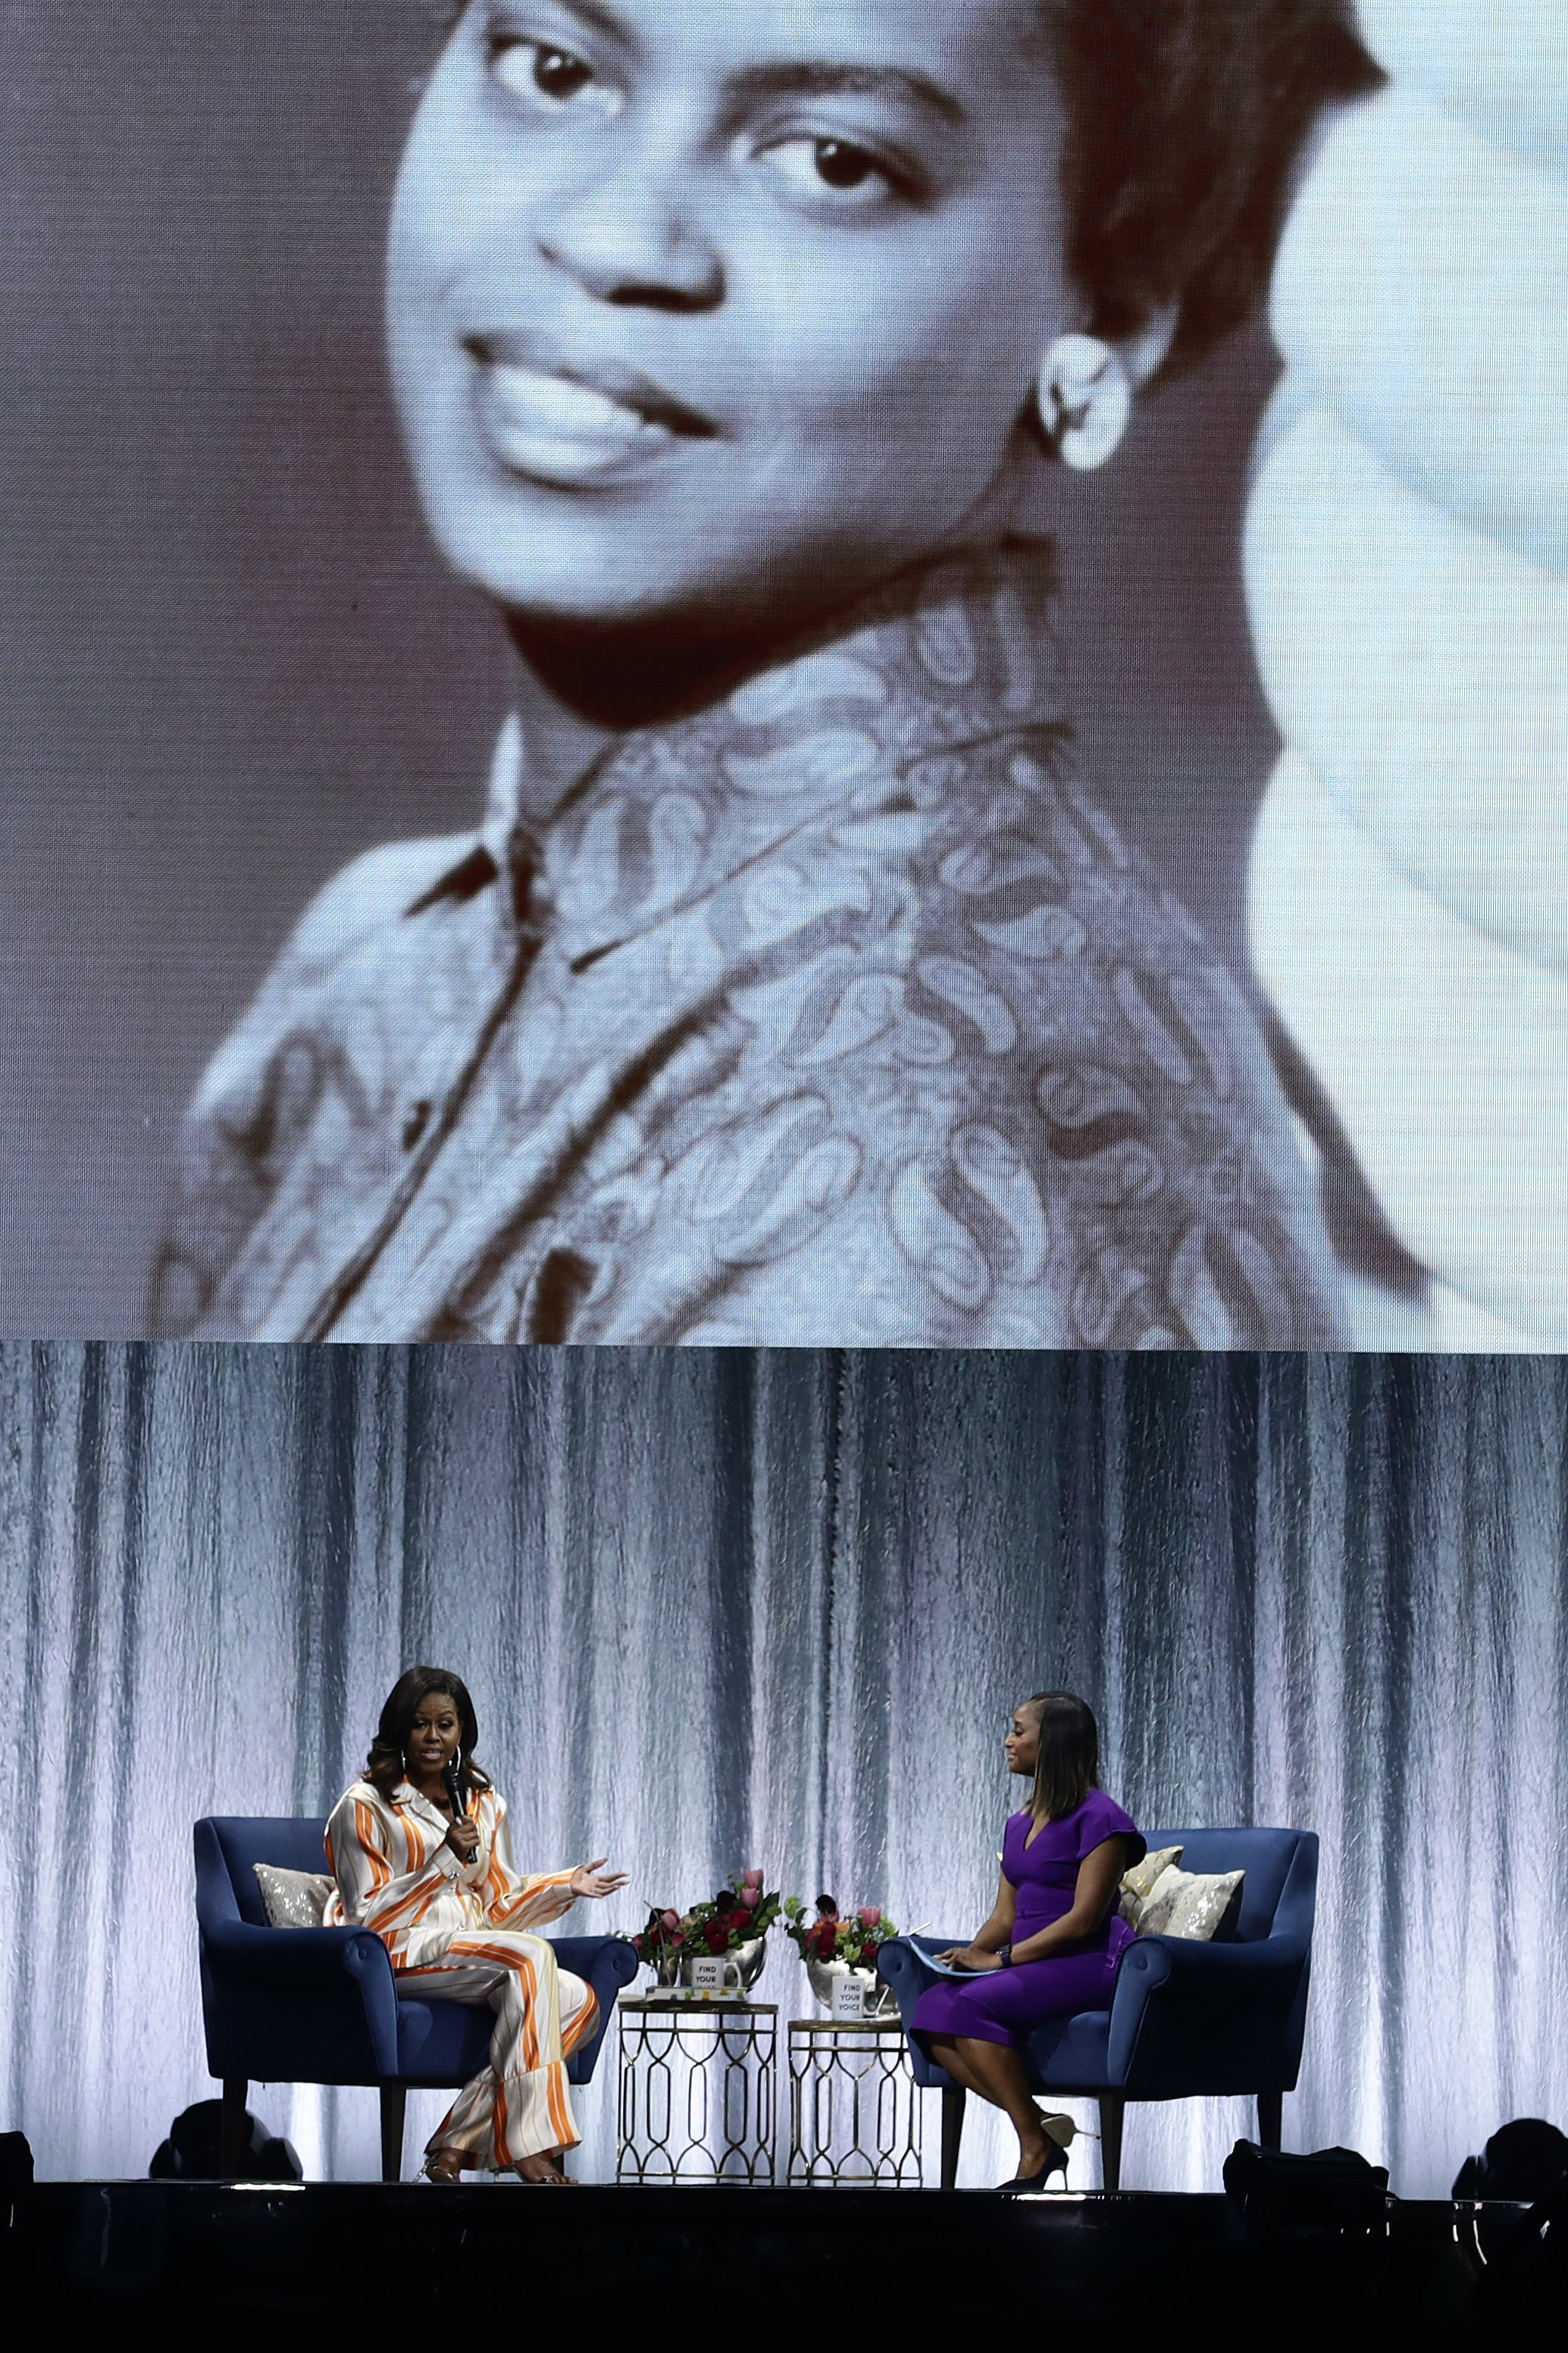 Michelle Obama speaking in front a picture of her younger self | Photo: Getty Images